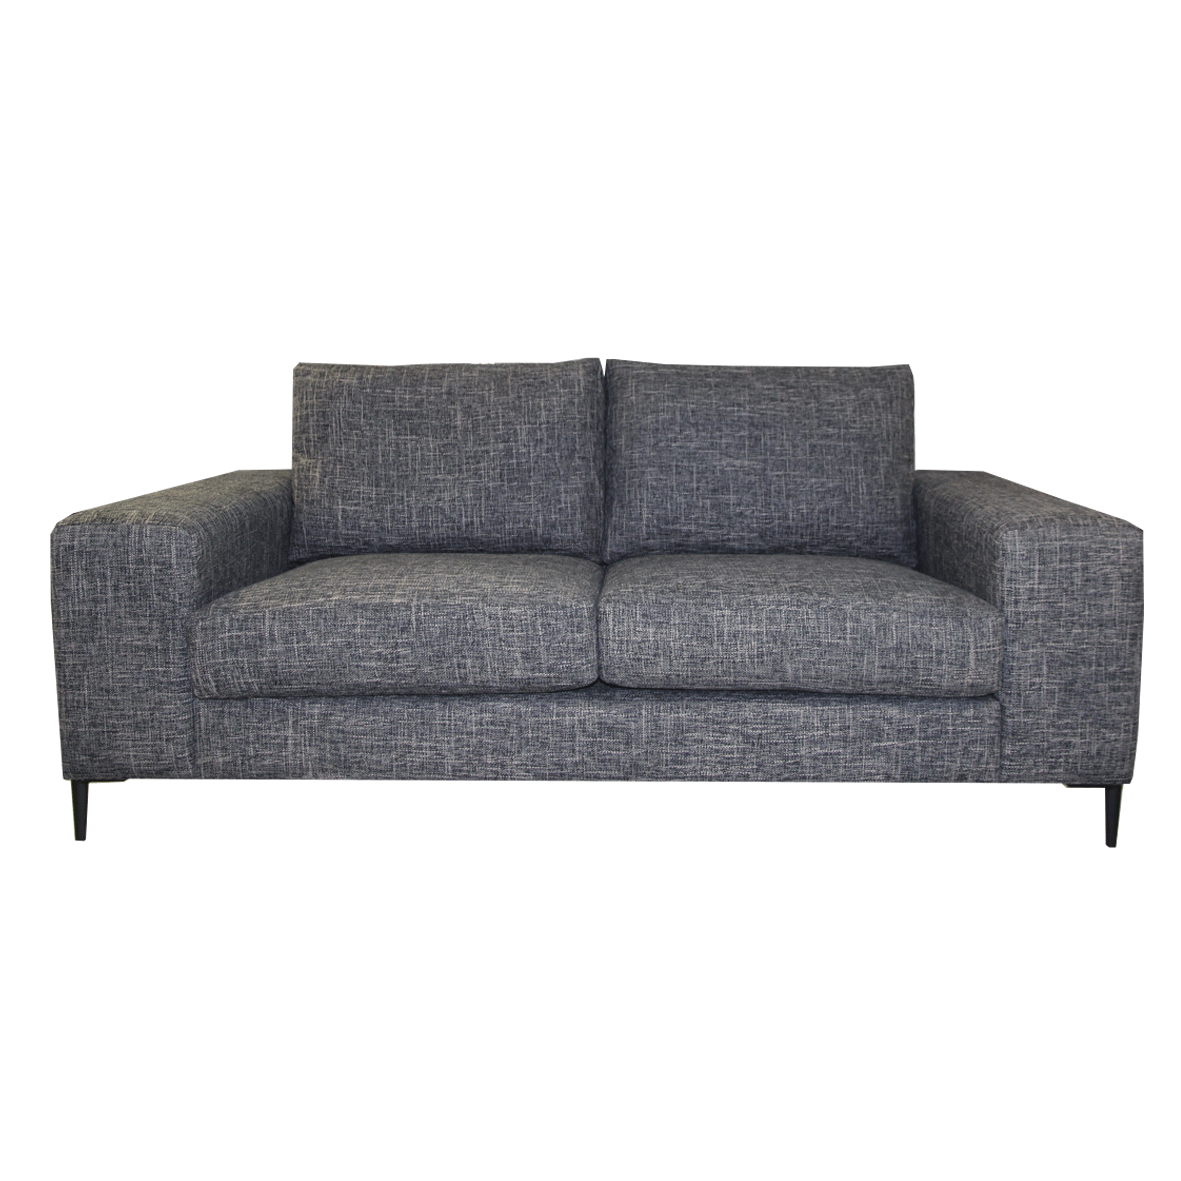 Antonio 3 + 2.5 + Armchair Lounge Suite - NZ Made